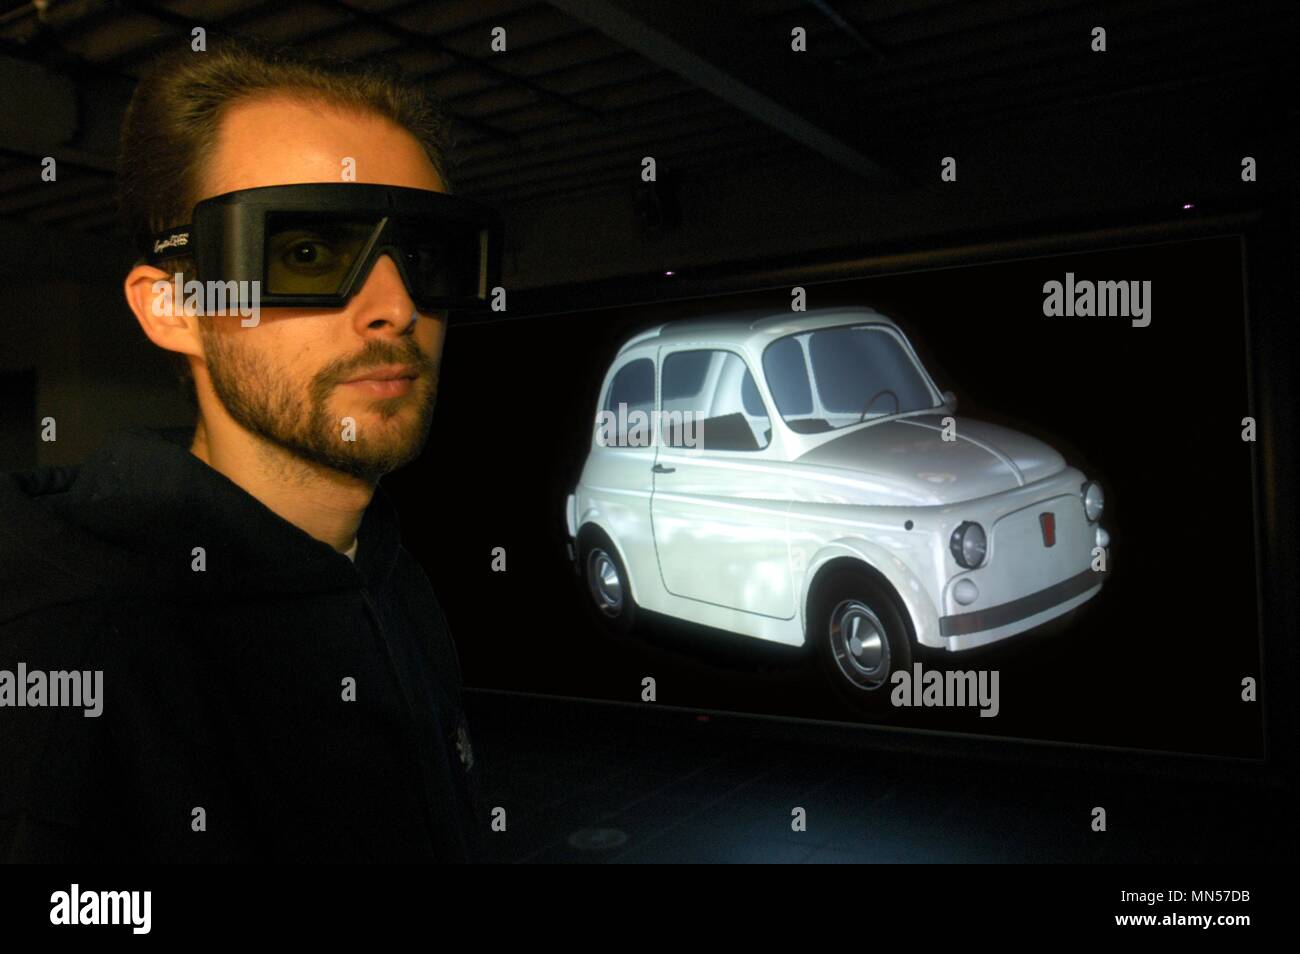 University of Milan - Bovisa Italy), department of Design, laboratory of Virtual Models, three-dimensional projection of a Fiat 500 car - Stock Image